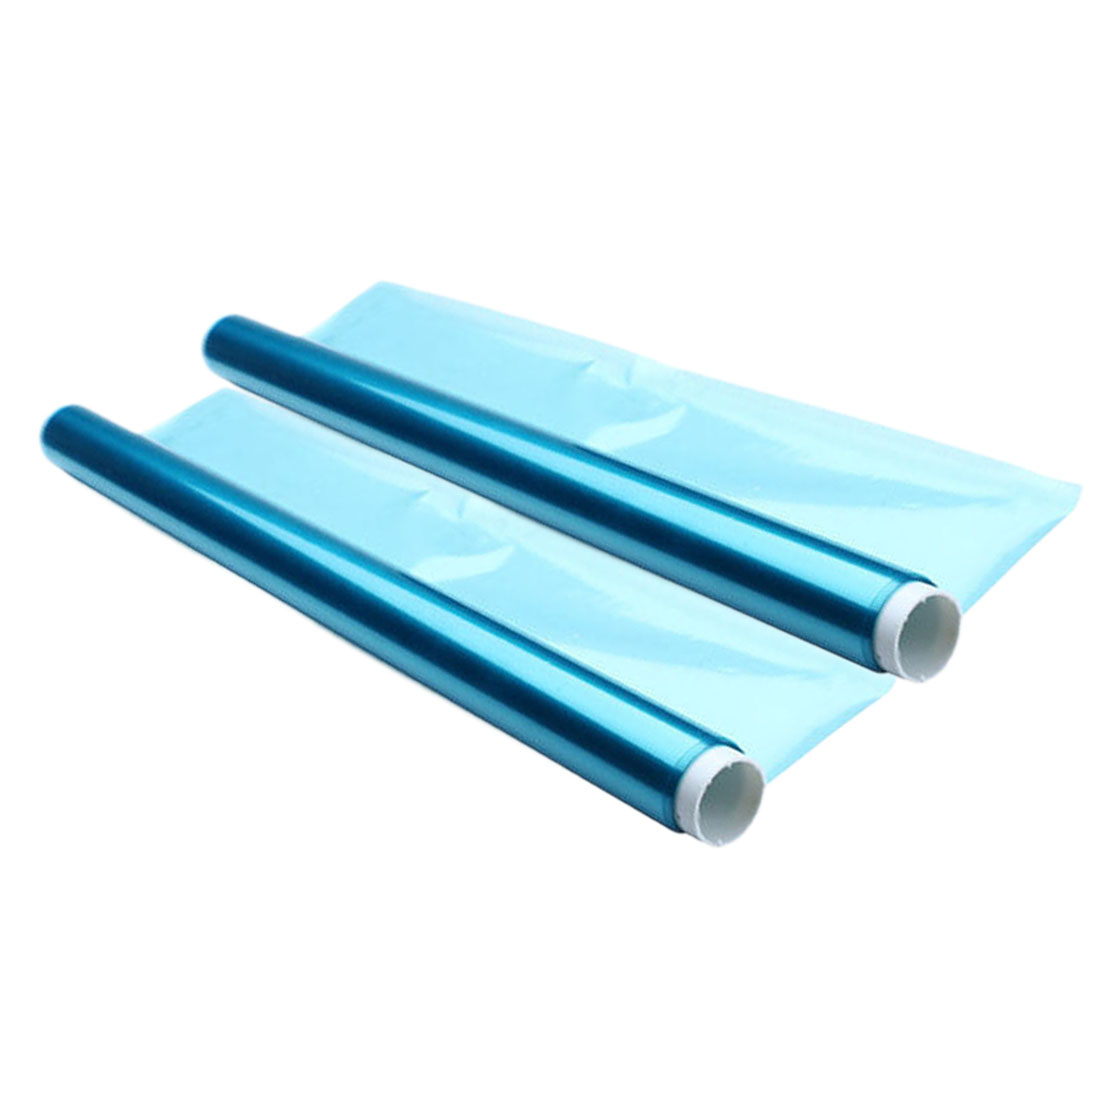 PCB Portable Photosensitive Dry Film For Circuit Photoresist Sheets 30CMx5M For Plating Hole Covering Etching